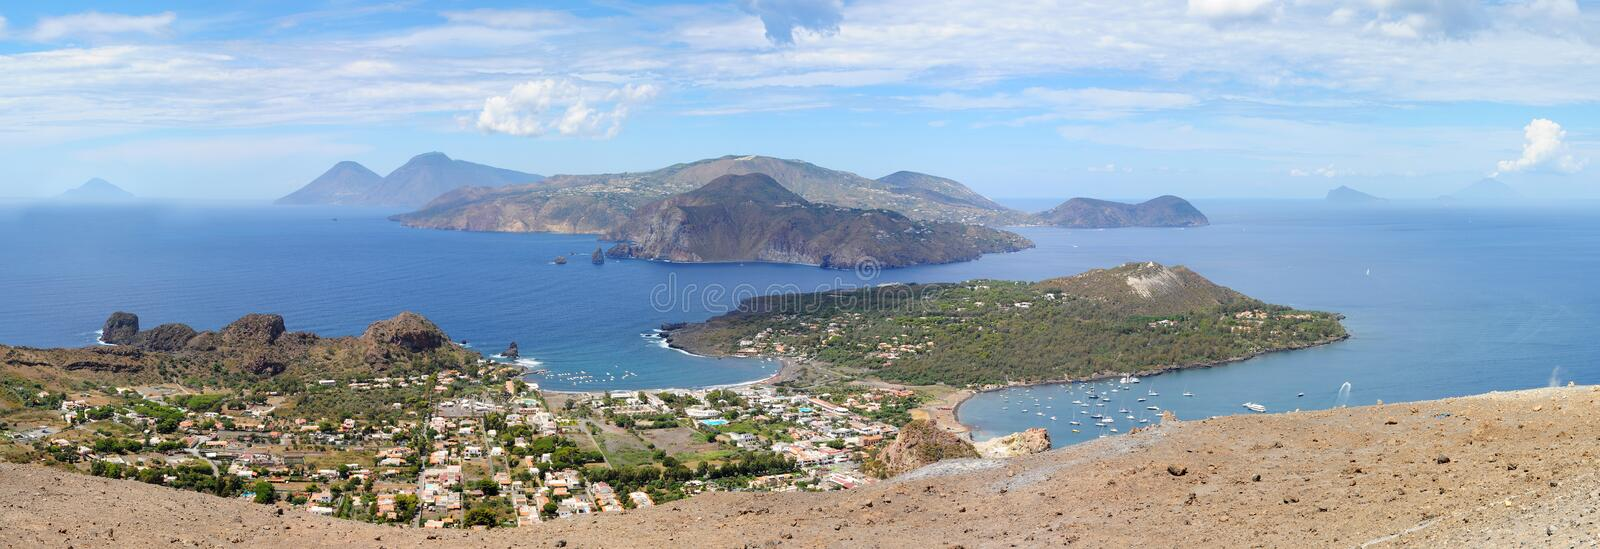 View from the top of volcano to Aeolian Islands stock images